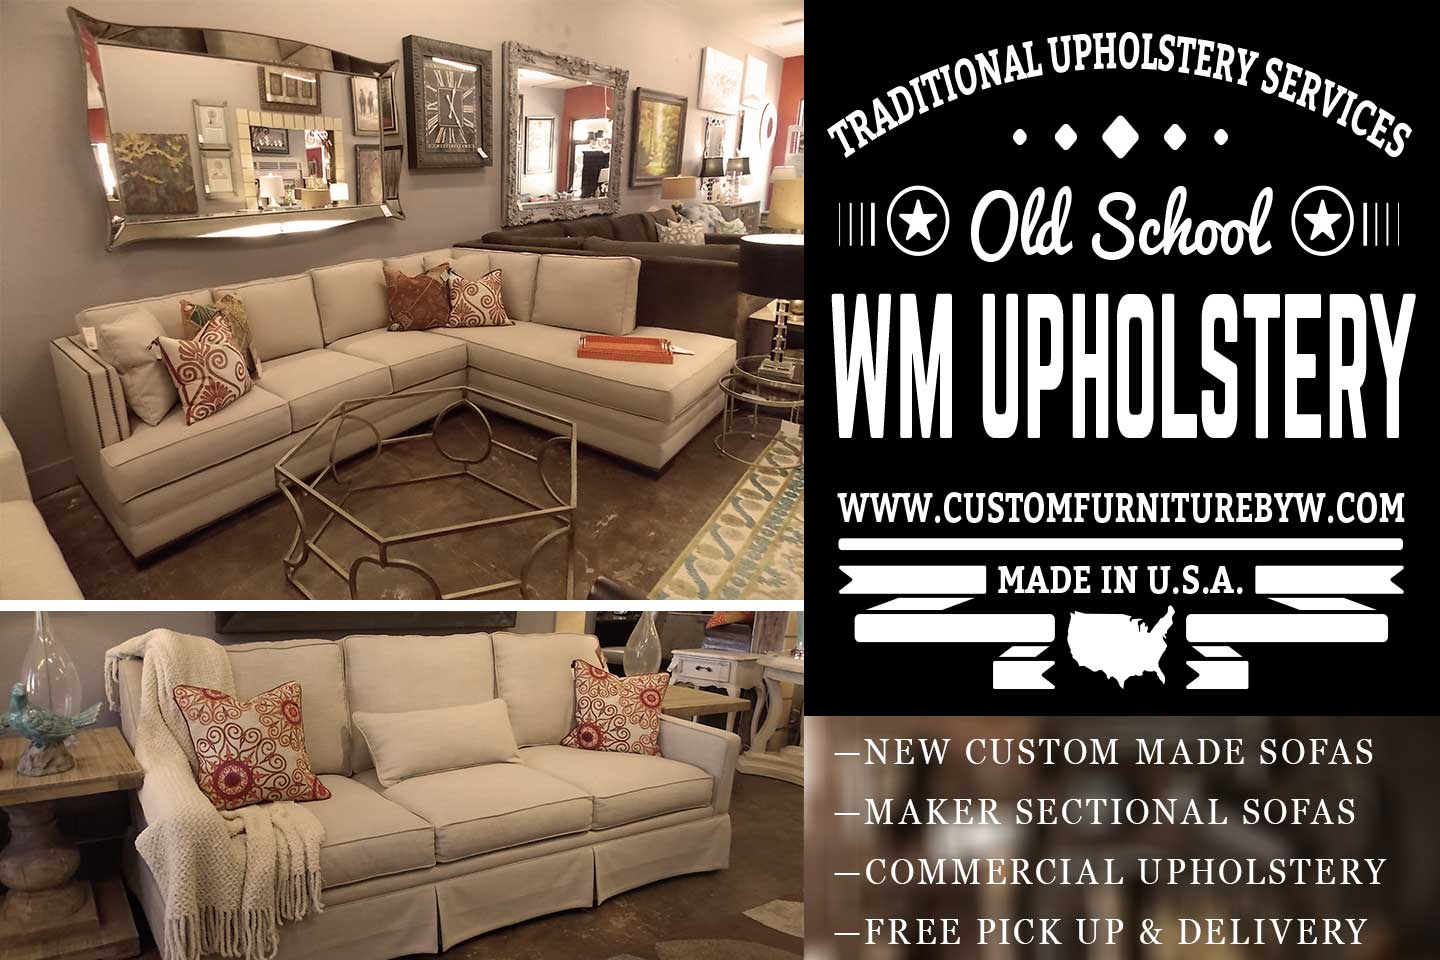 Superior Furniture Stores In Van Nuys Ca #11: Re Upholstery Van Nuys Services